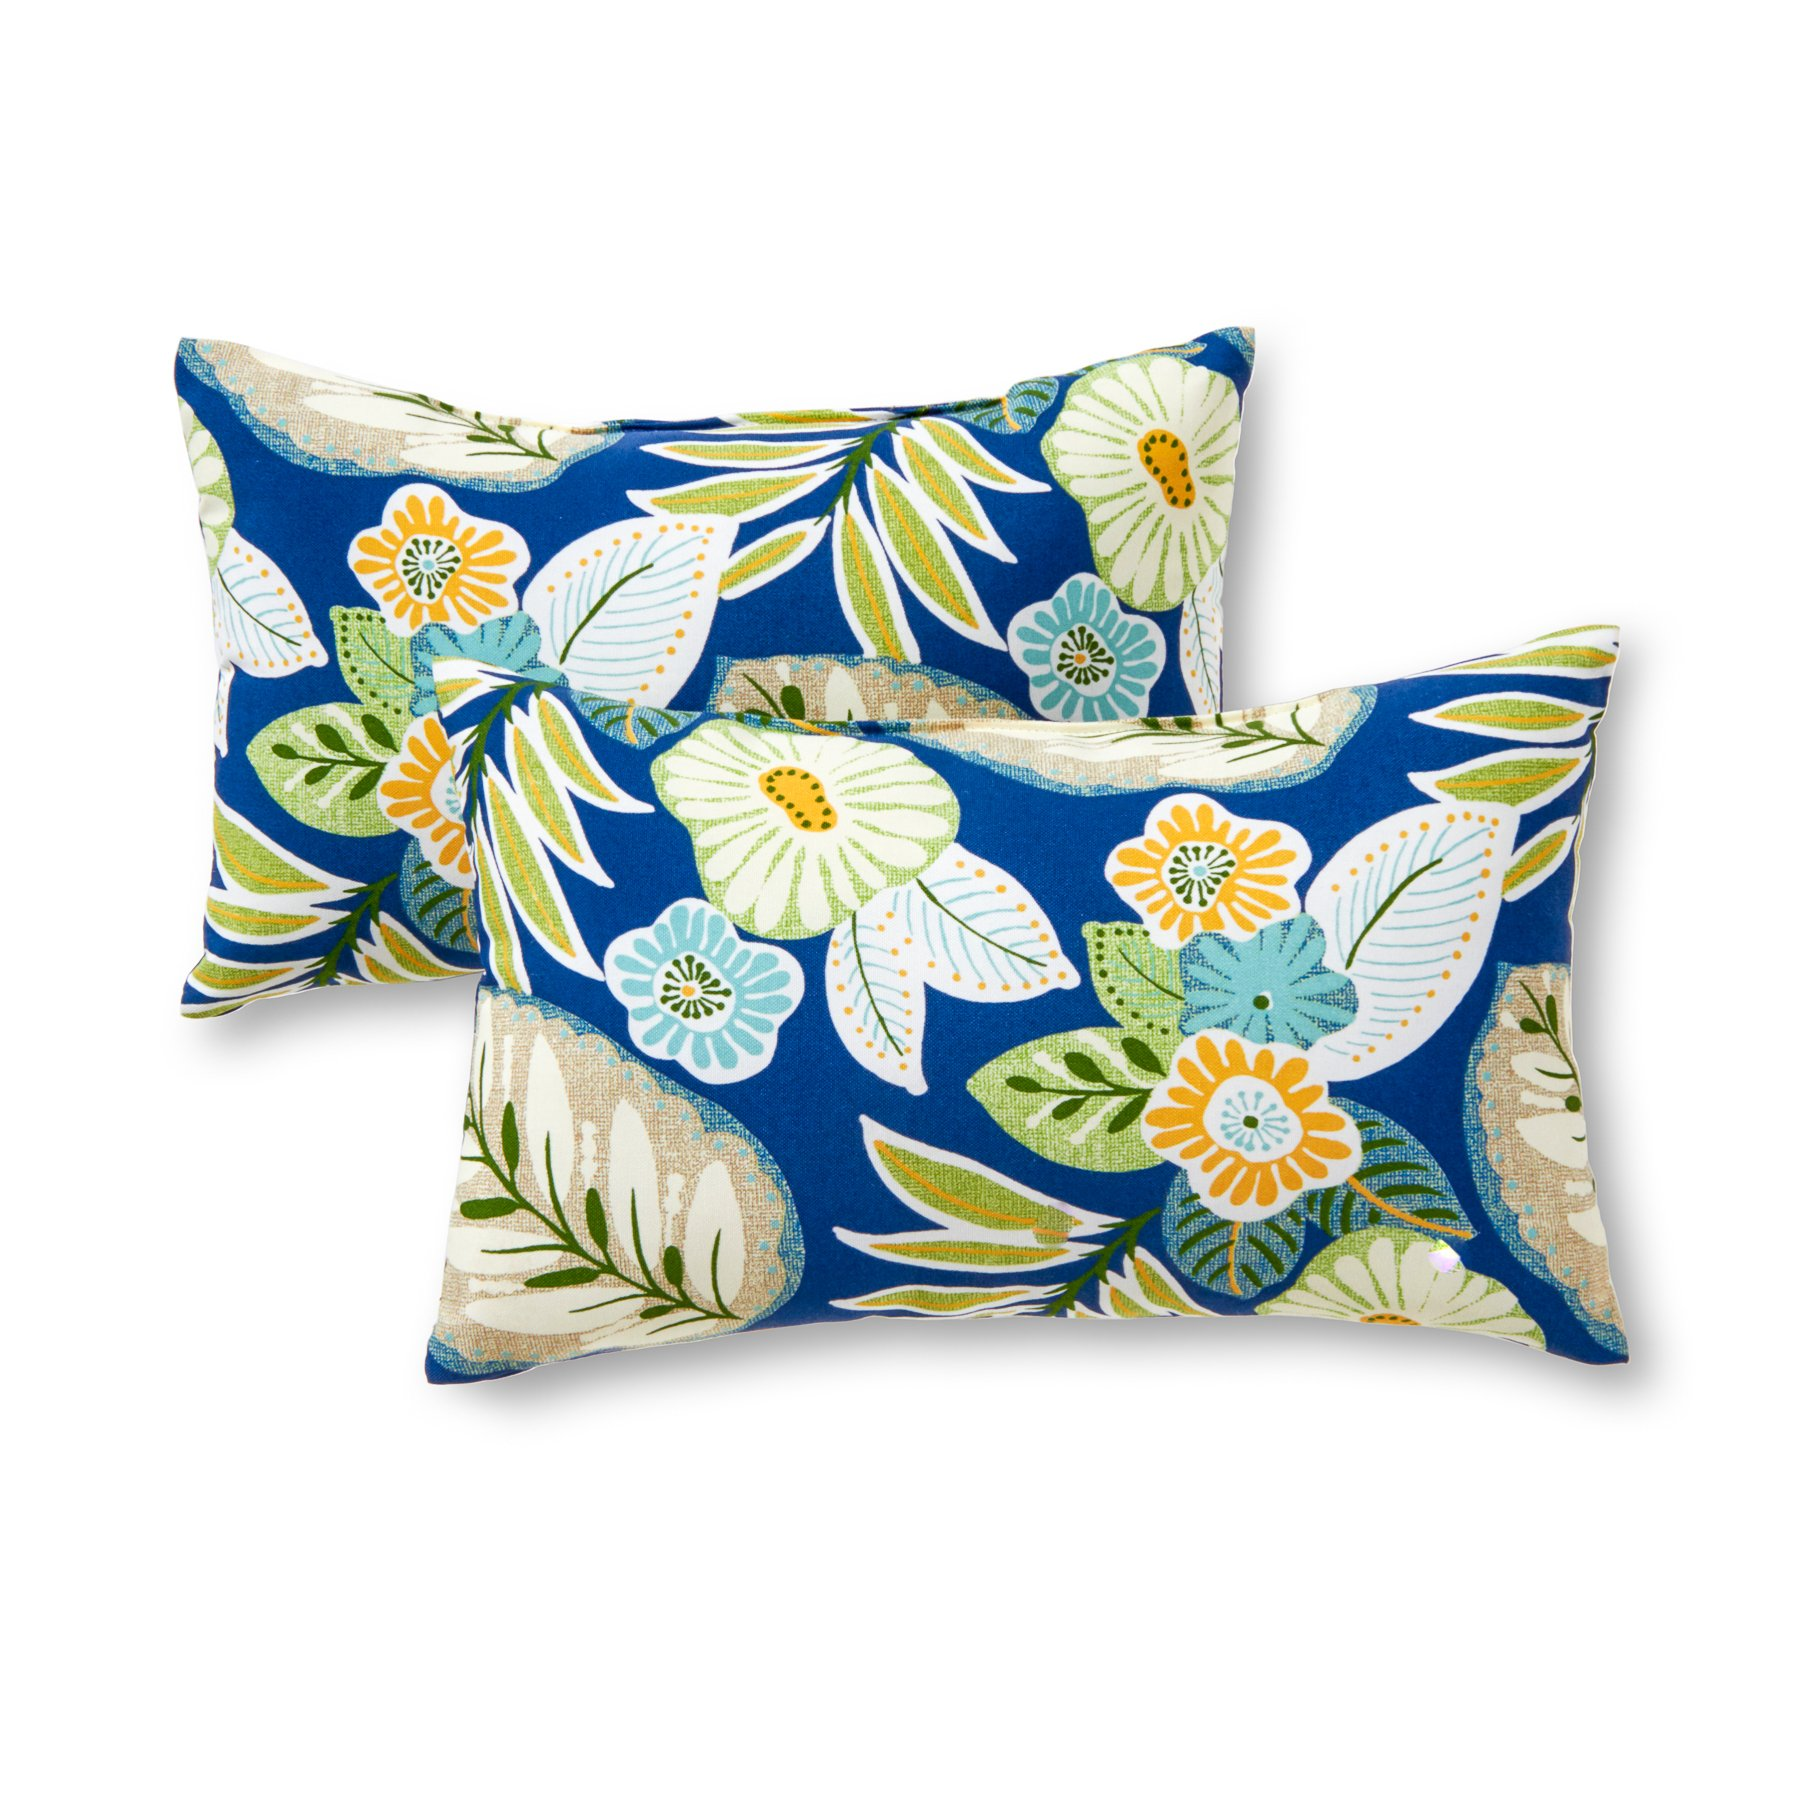 Greendale Home Fashions Rectangle Outdoor Accent Pillow (set of 2), Marlow